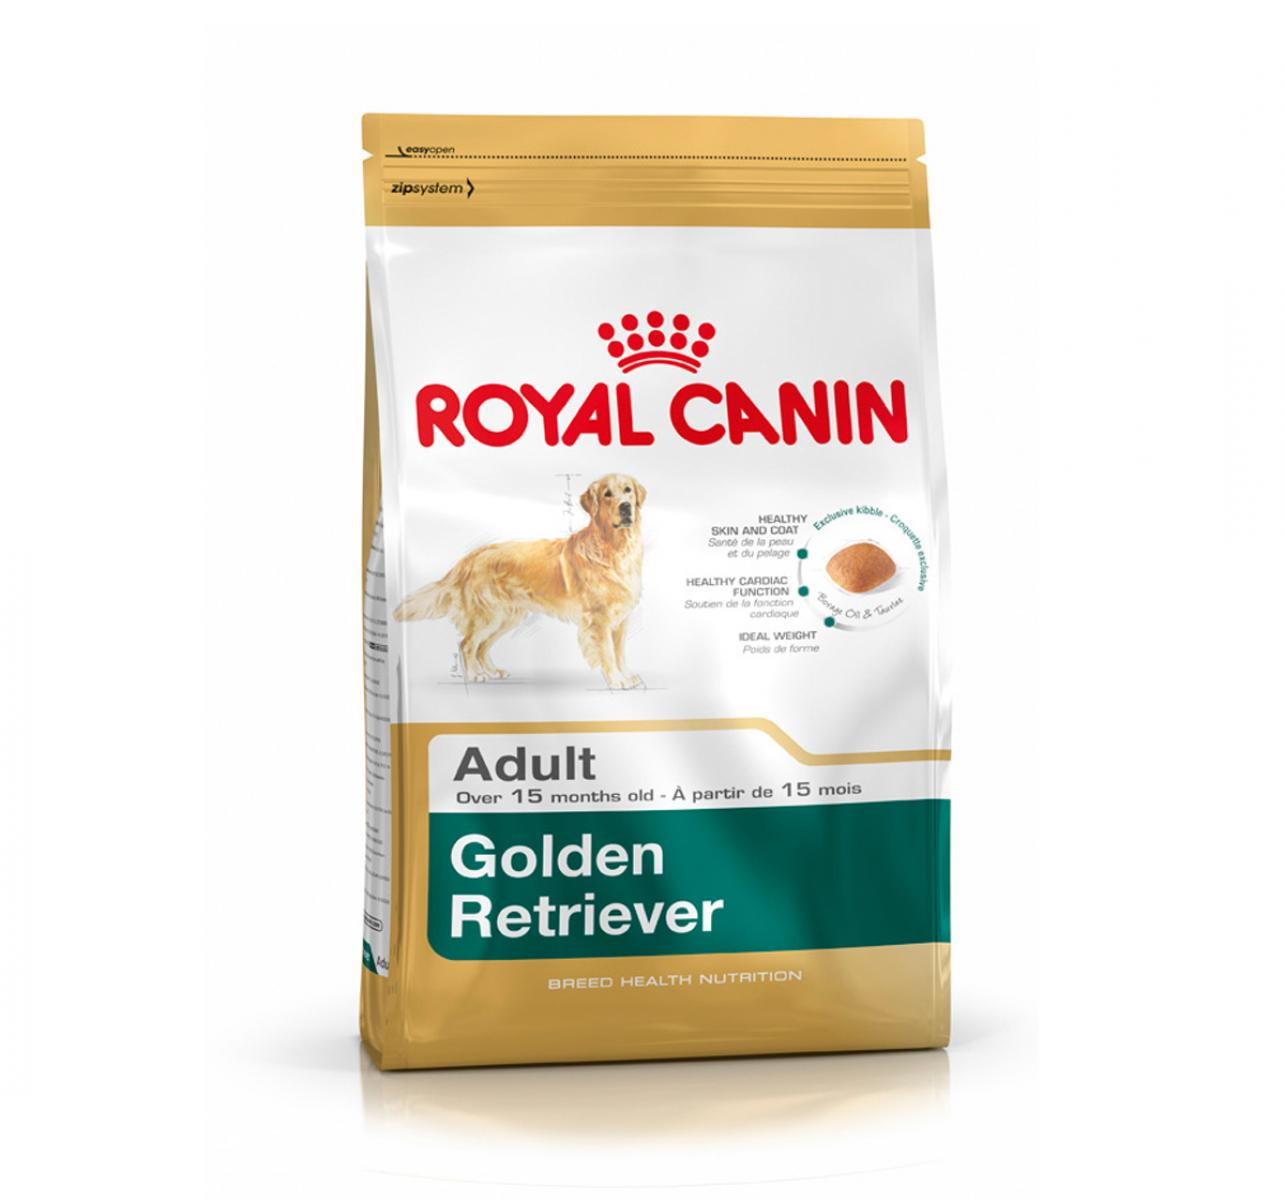 Royal Canin Golden Retriever Adult - 12 Kg